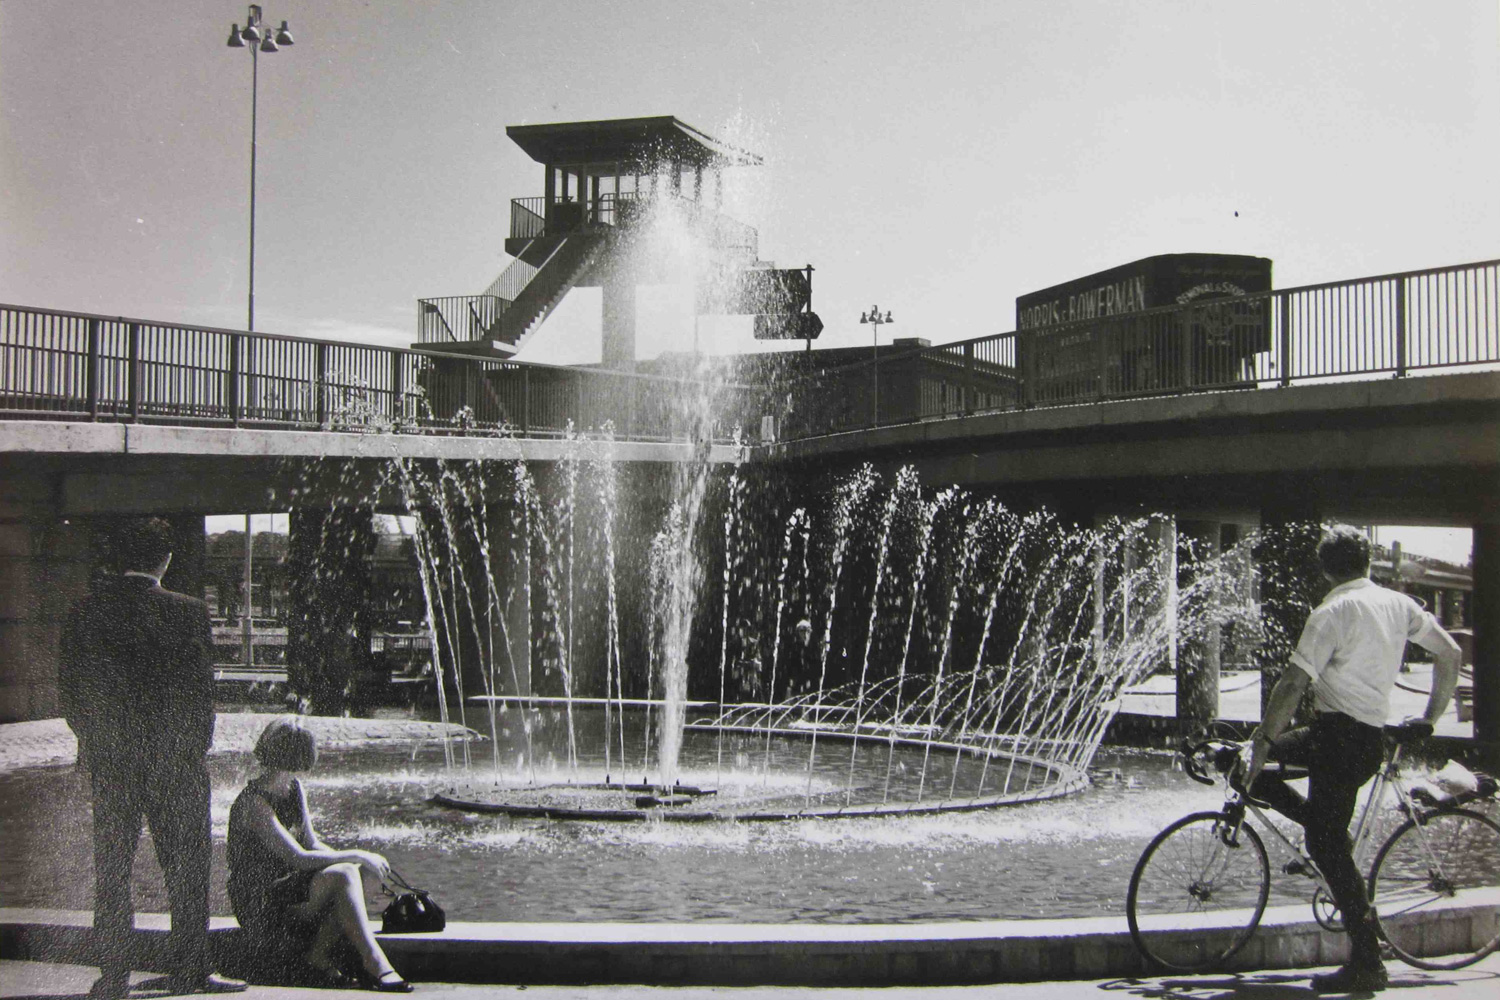 CUMBERLAND PIAZZA FOUNTAIN. SYLVIA CROWE COLLECTION. © MUSEUM OF ENGLISH RURAL LIFE / LANDSCAPE INSTITUTE